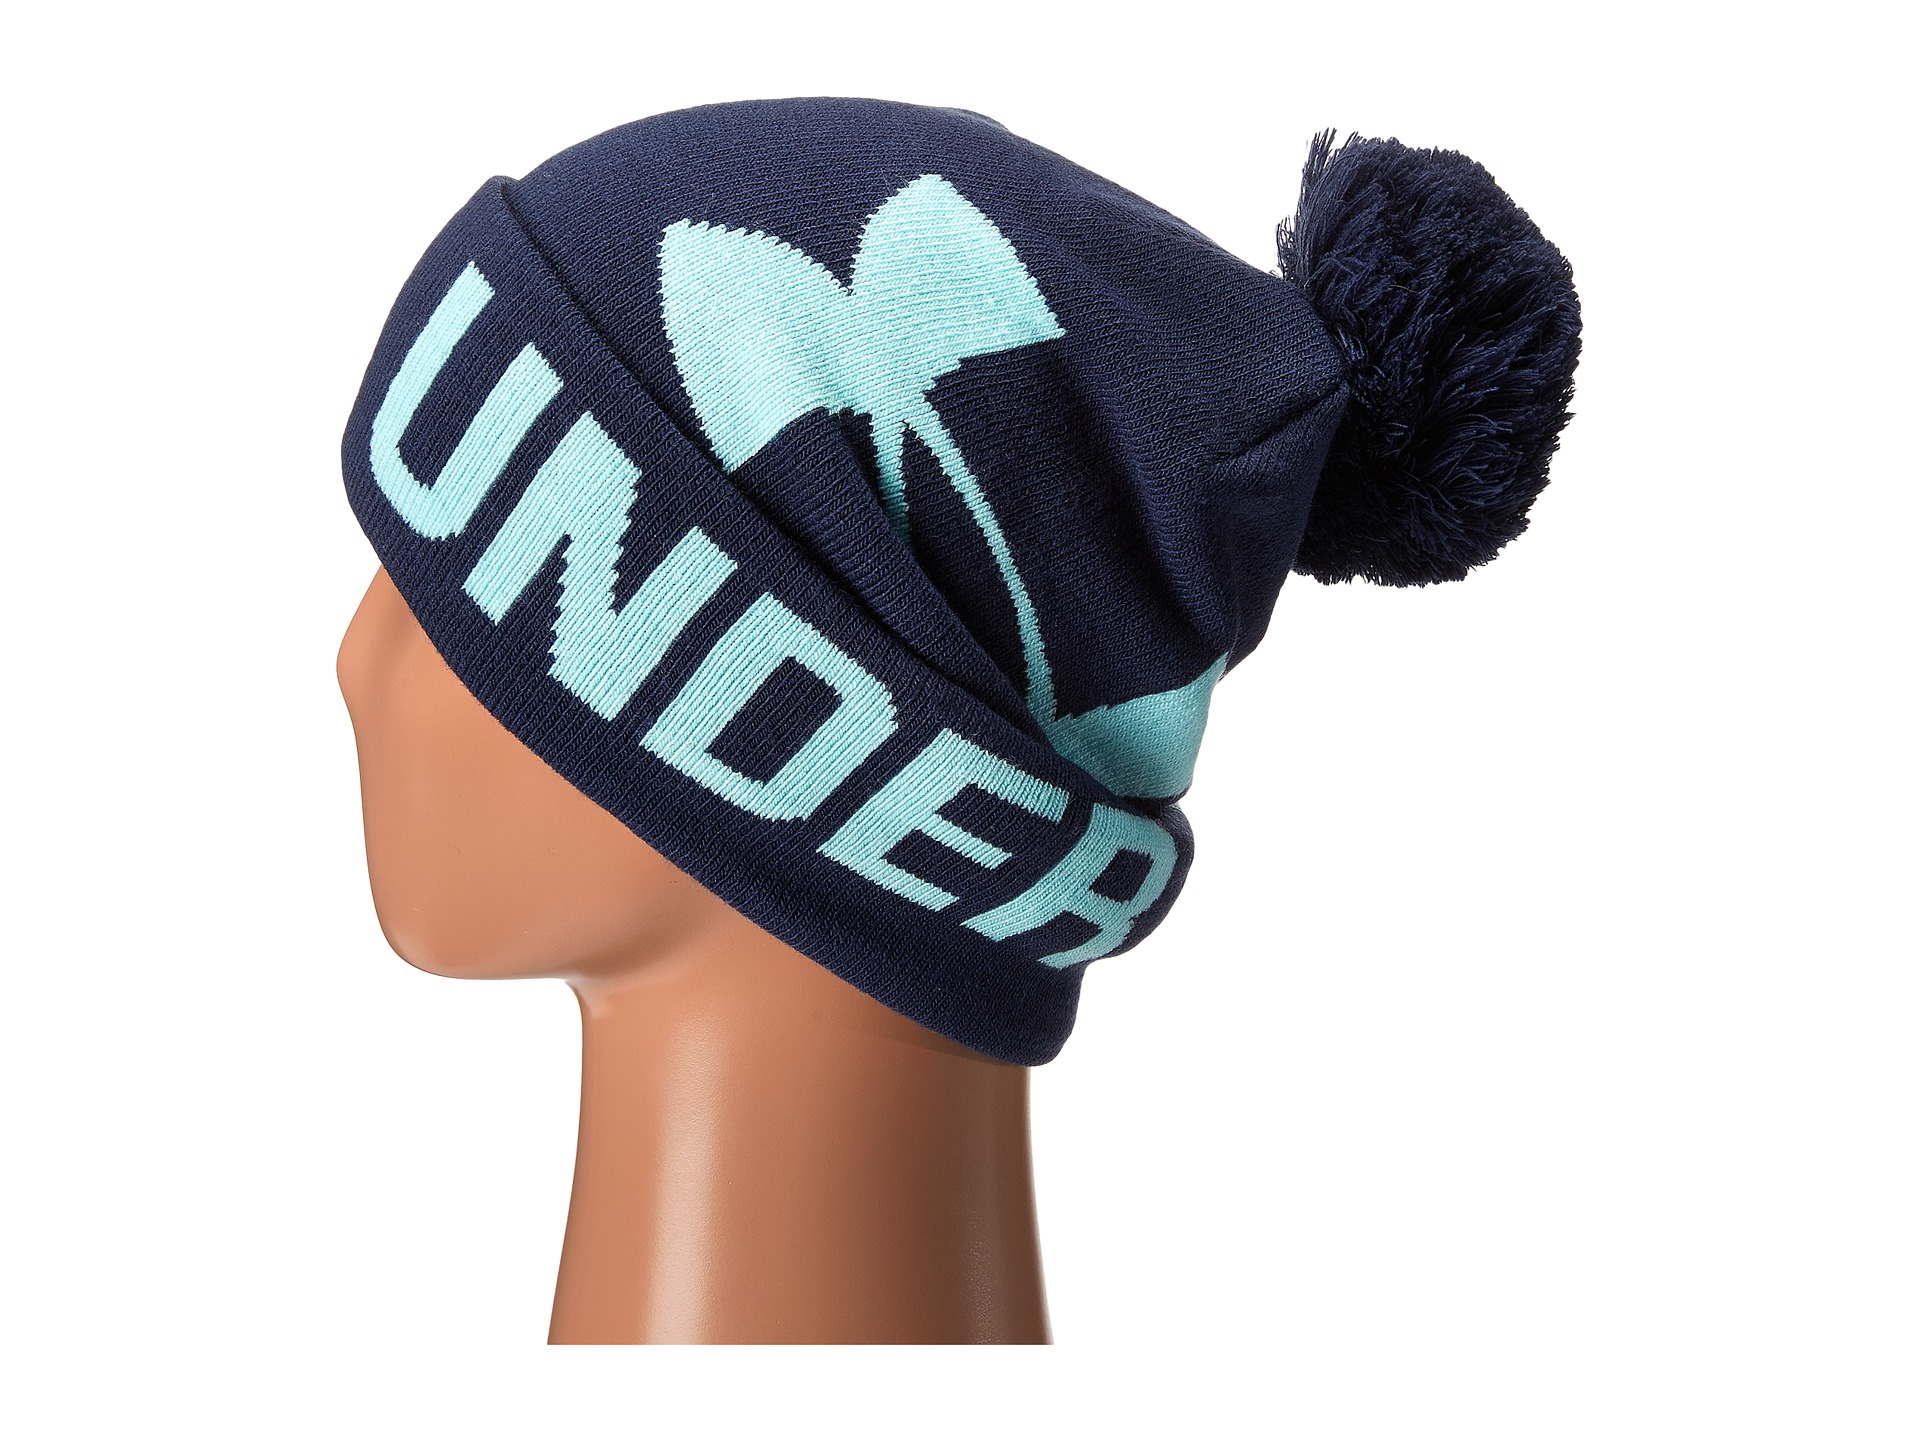 bd43d20553d87 ... free shipping lyst under armour ua graphic pom pom beanie in blue 84240  e4a87 ...